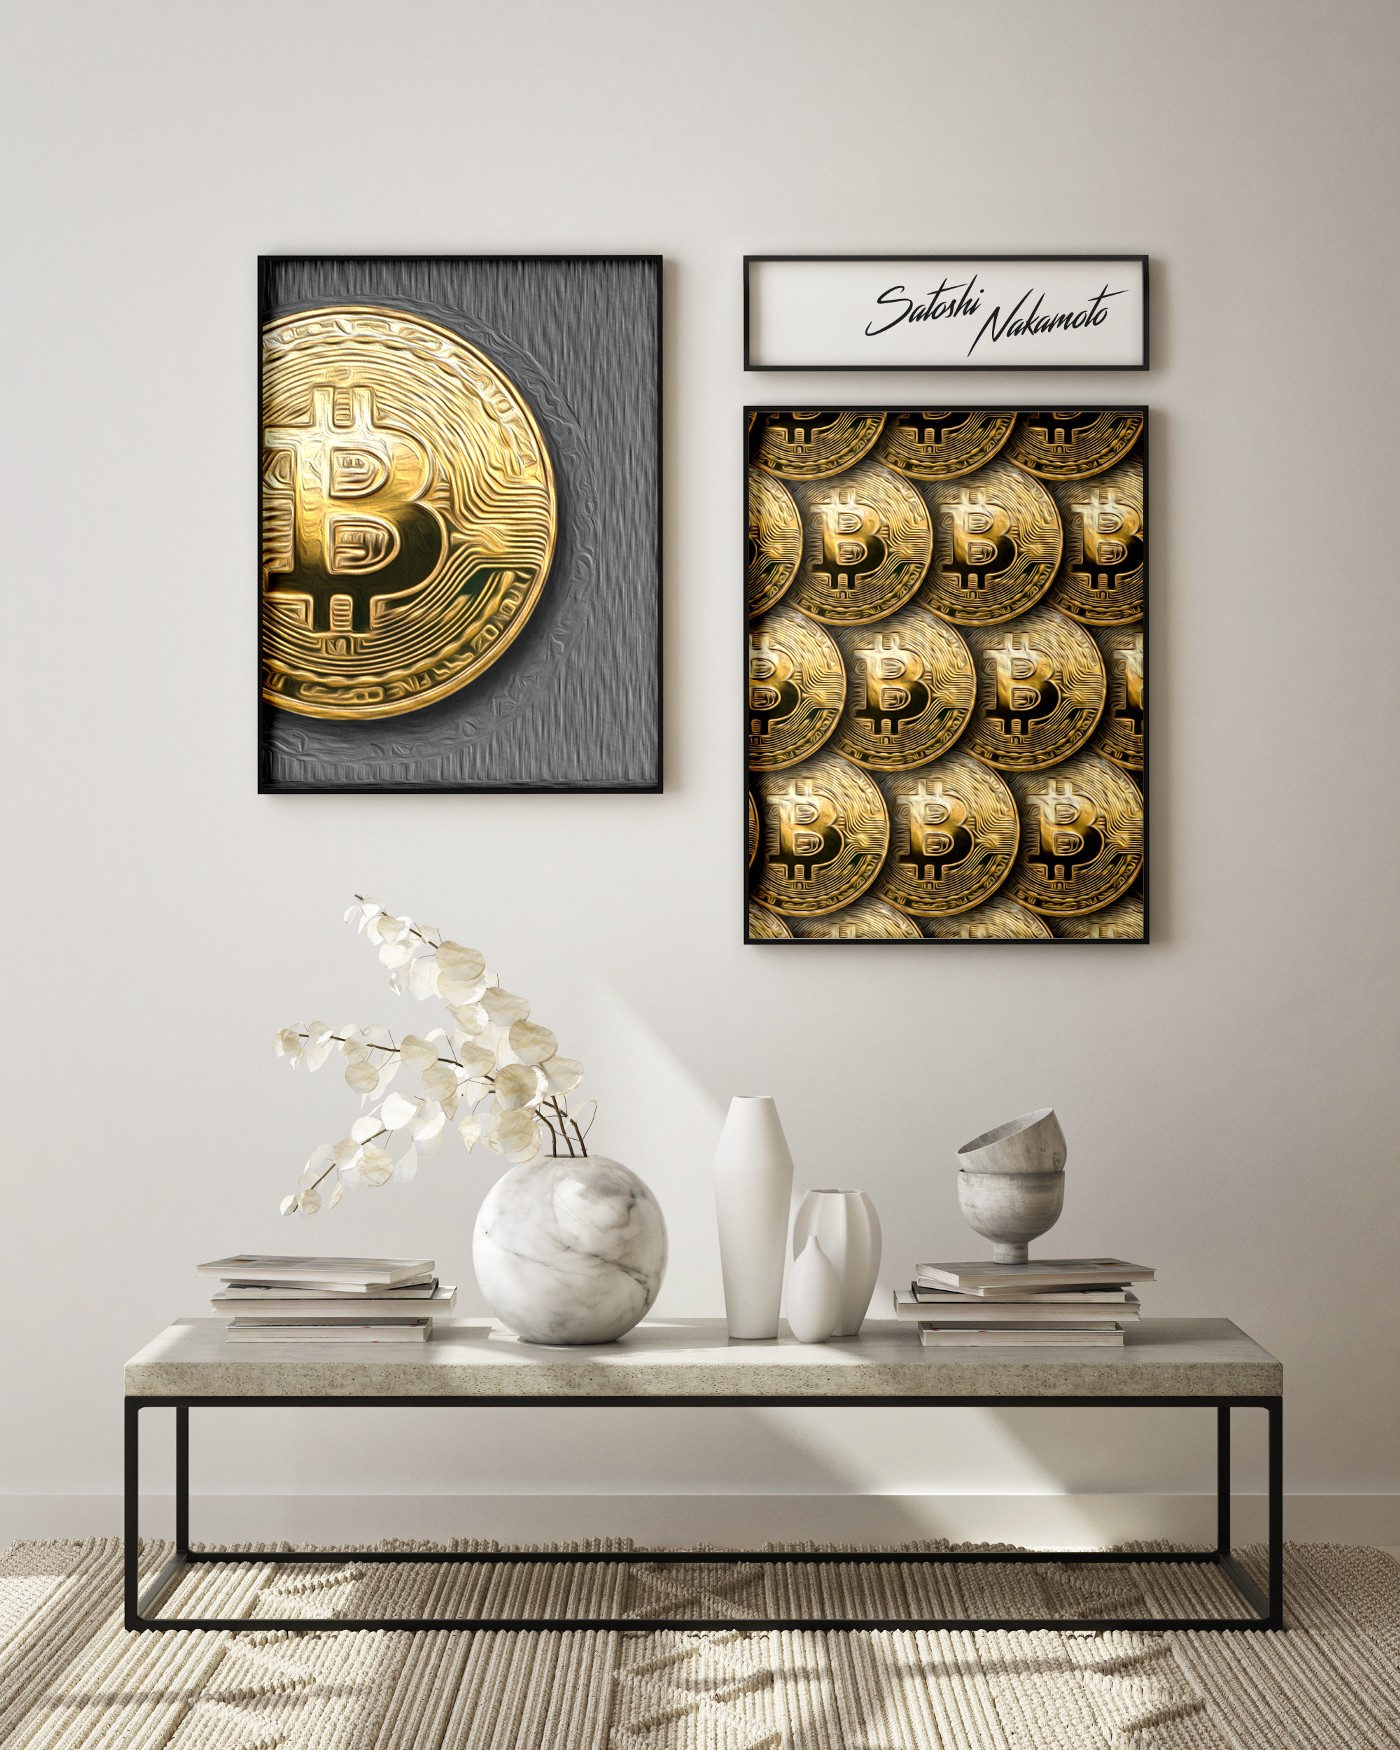 Bitcoin pictures on wall.